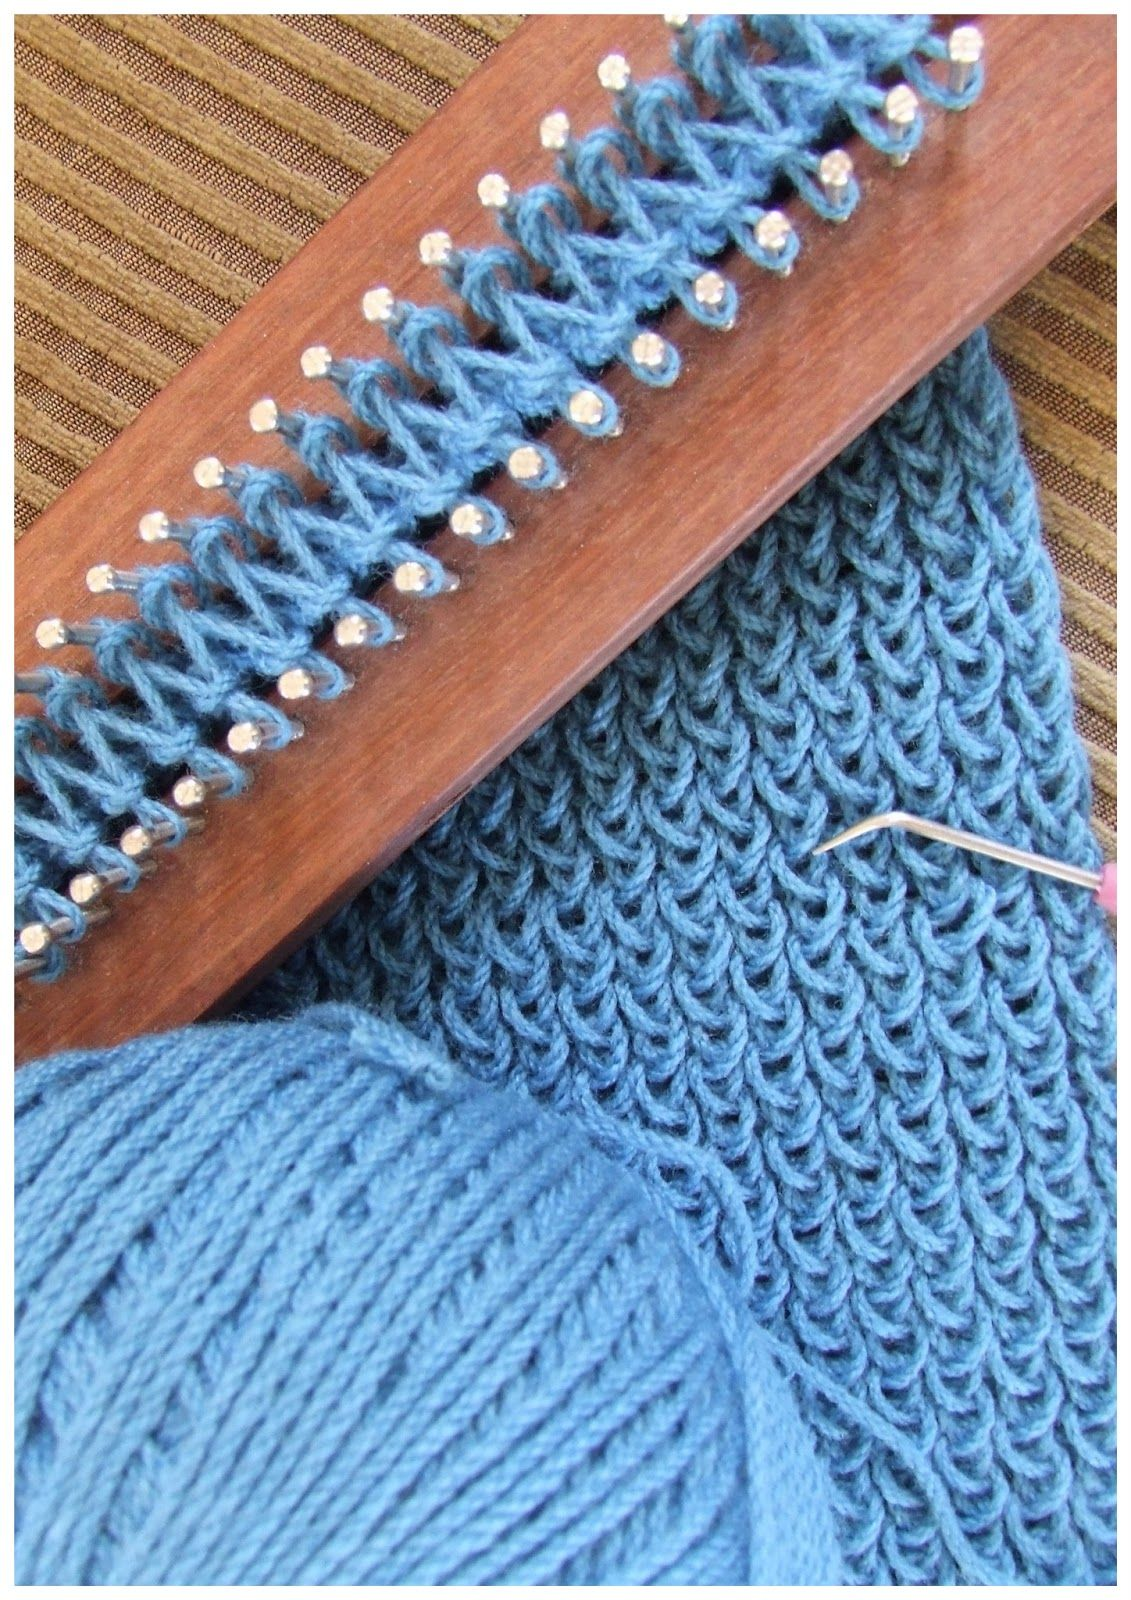 FitzBirch Crafts: Loom Knitting patterns | Knitting on a Loom ...